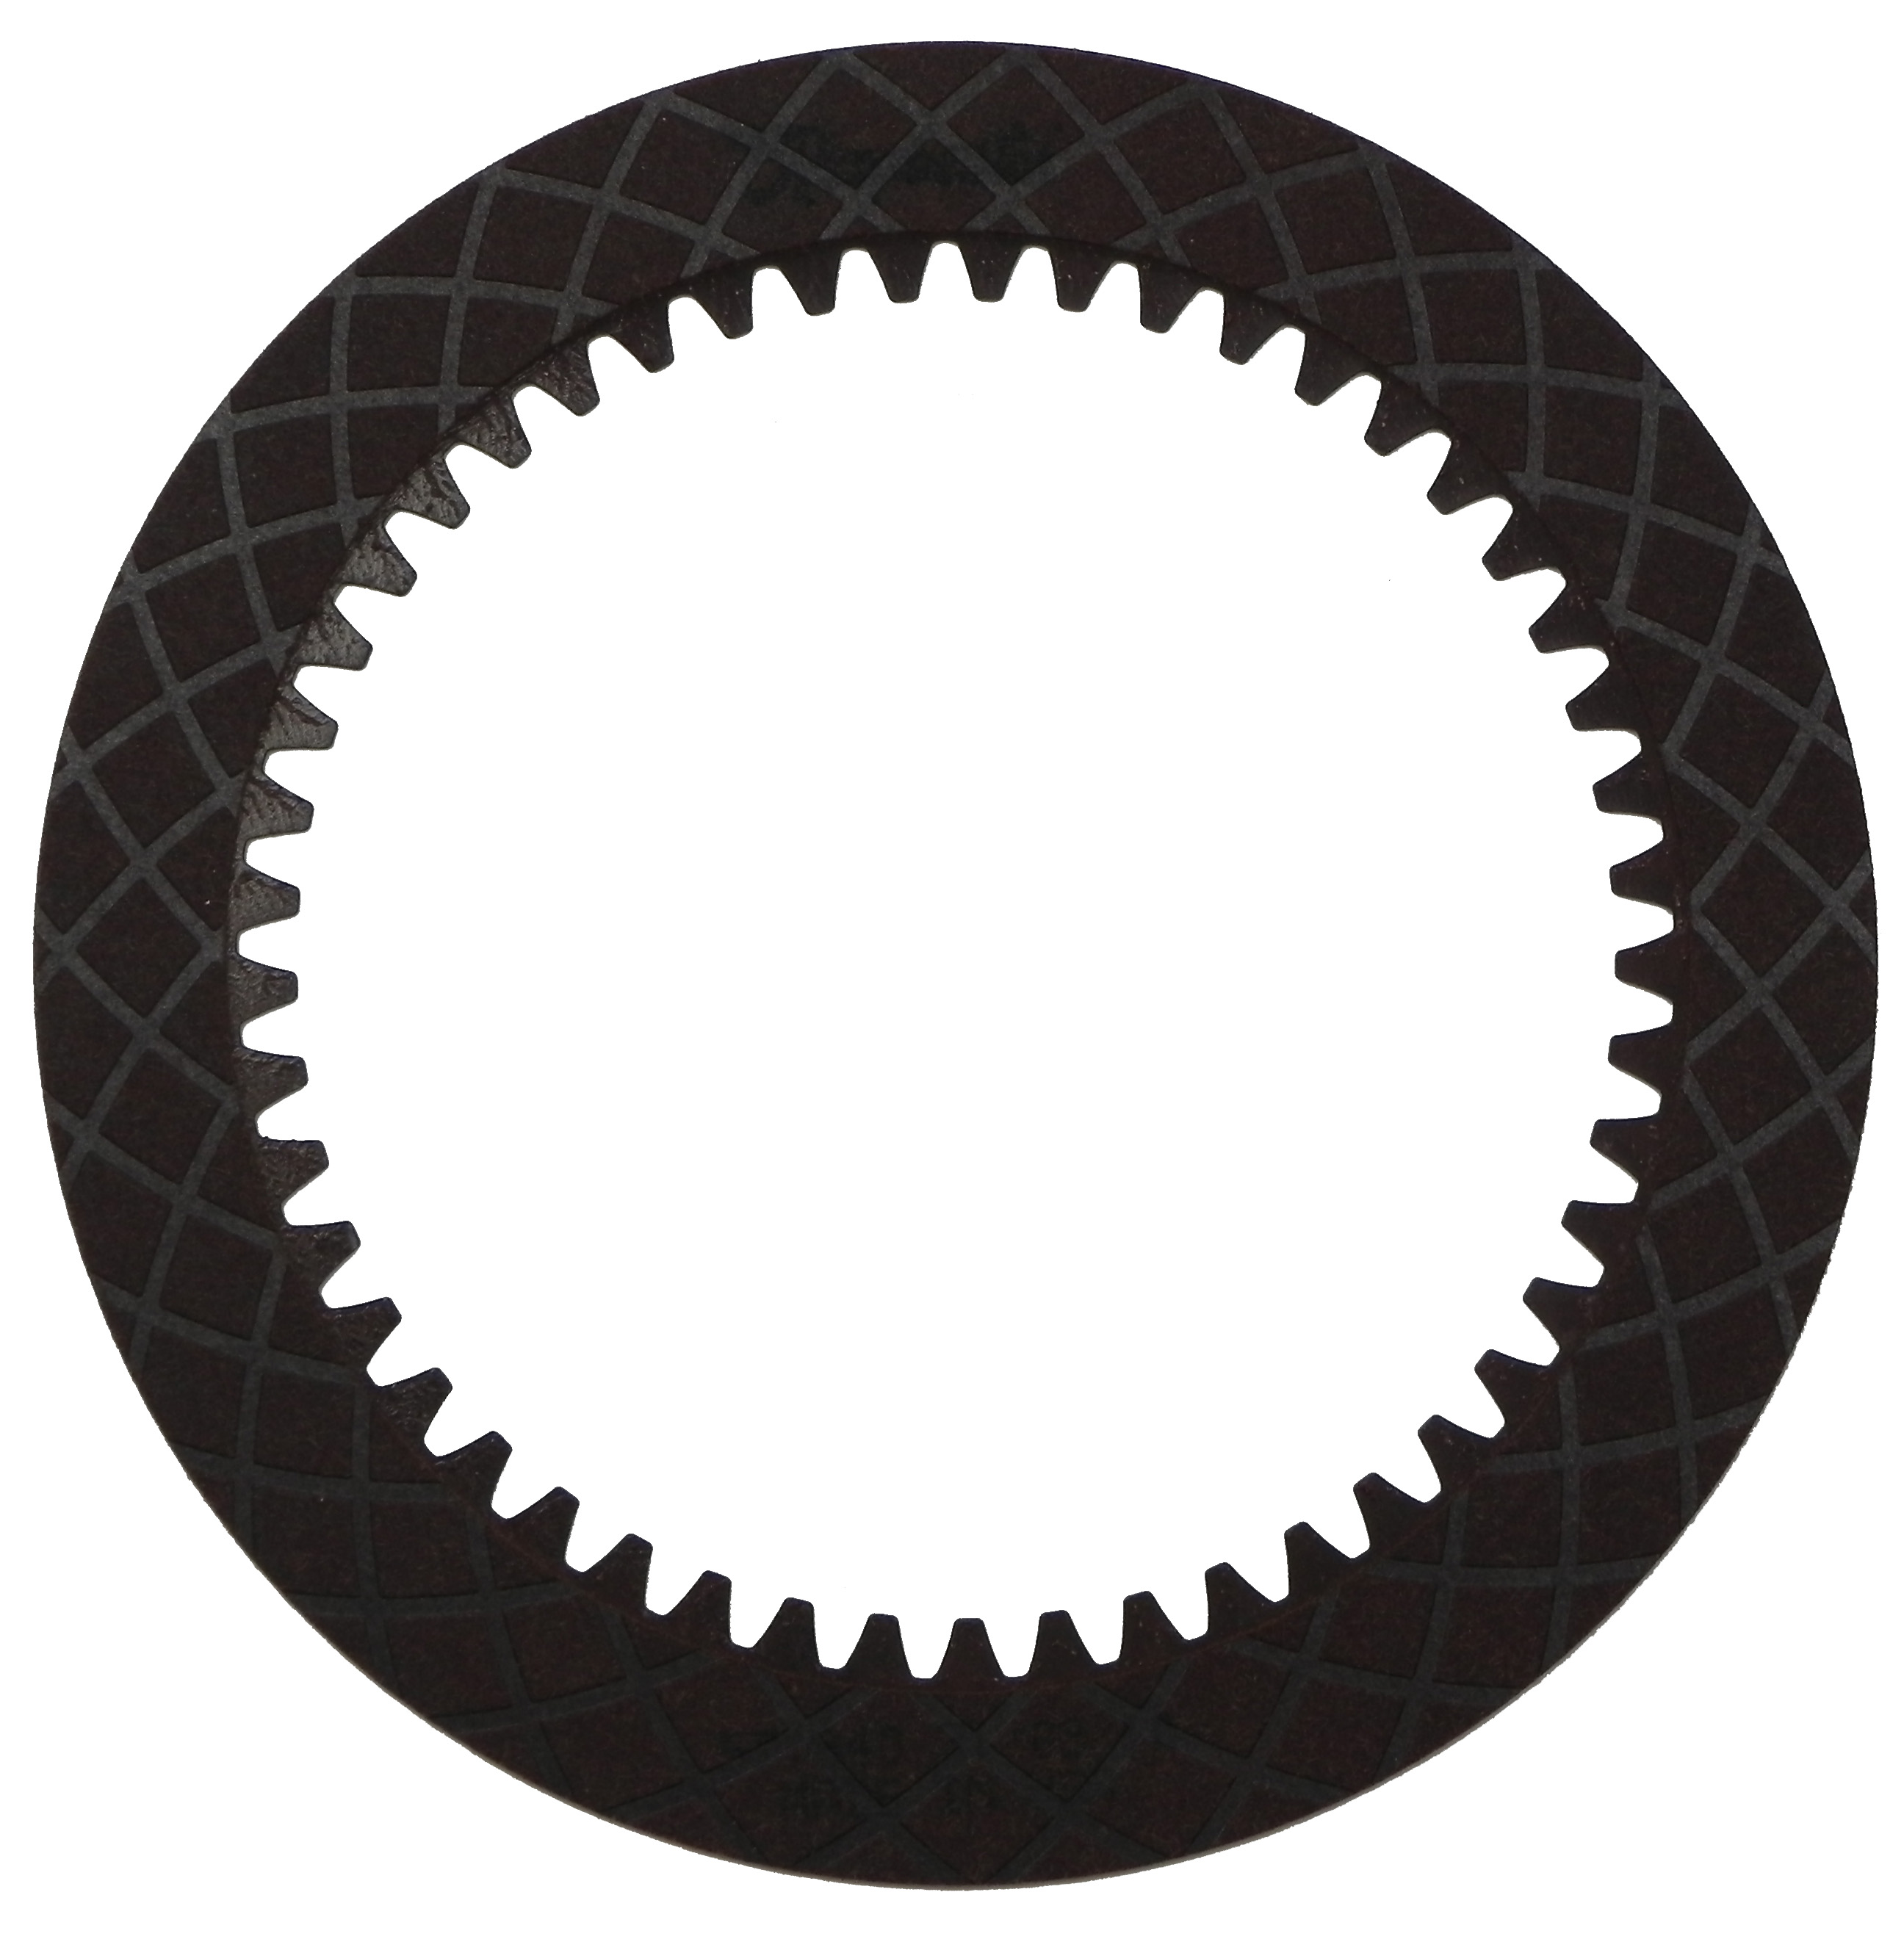 R571840 | 2000-2005 Friction Clutch Plate GPX 1st GPX